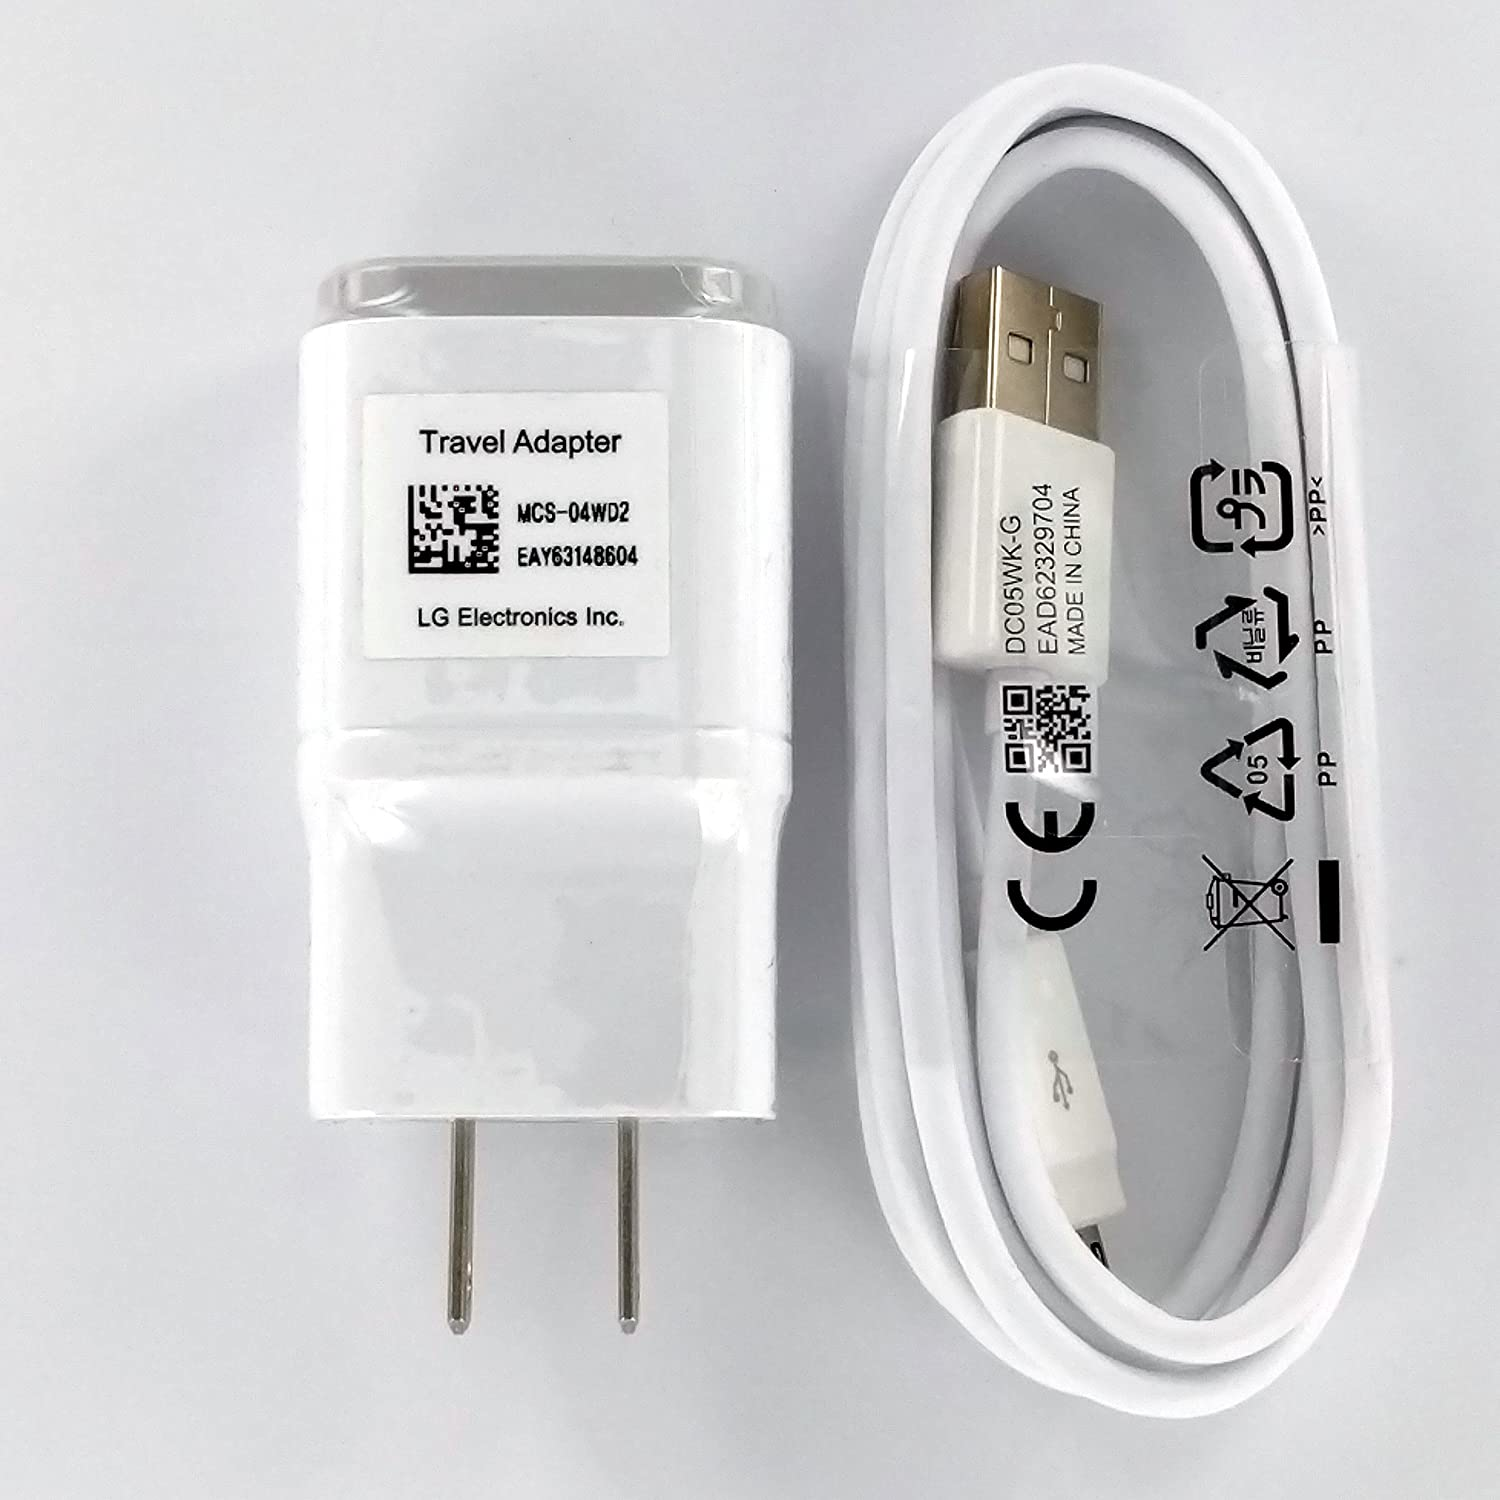 Oem Lg 18 Charger Mcs 04wd With 20 5ft Micro Usb For Max9730 24w Class G Power Amplifier G2 Google Nexus Flax L9 F3 Cell Phones Accessories